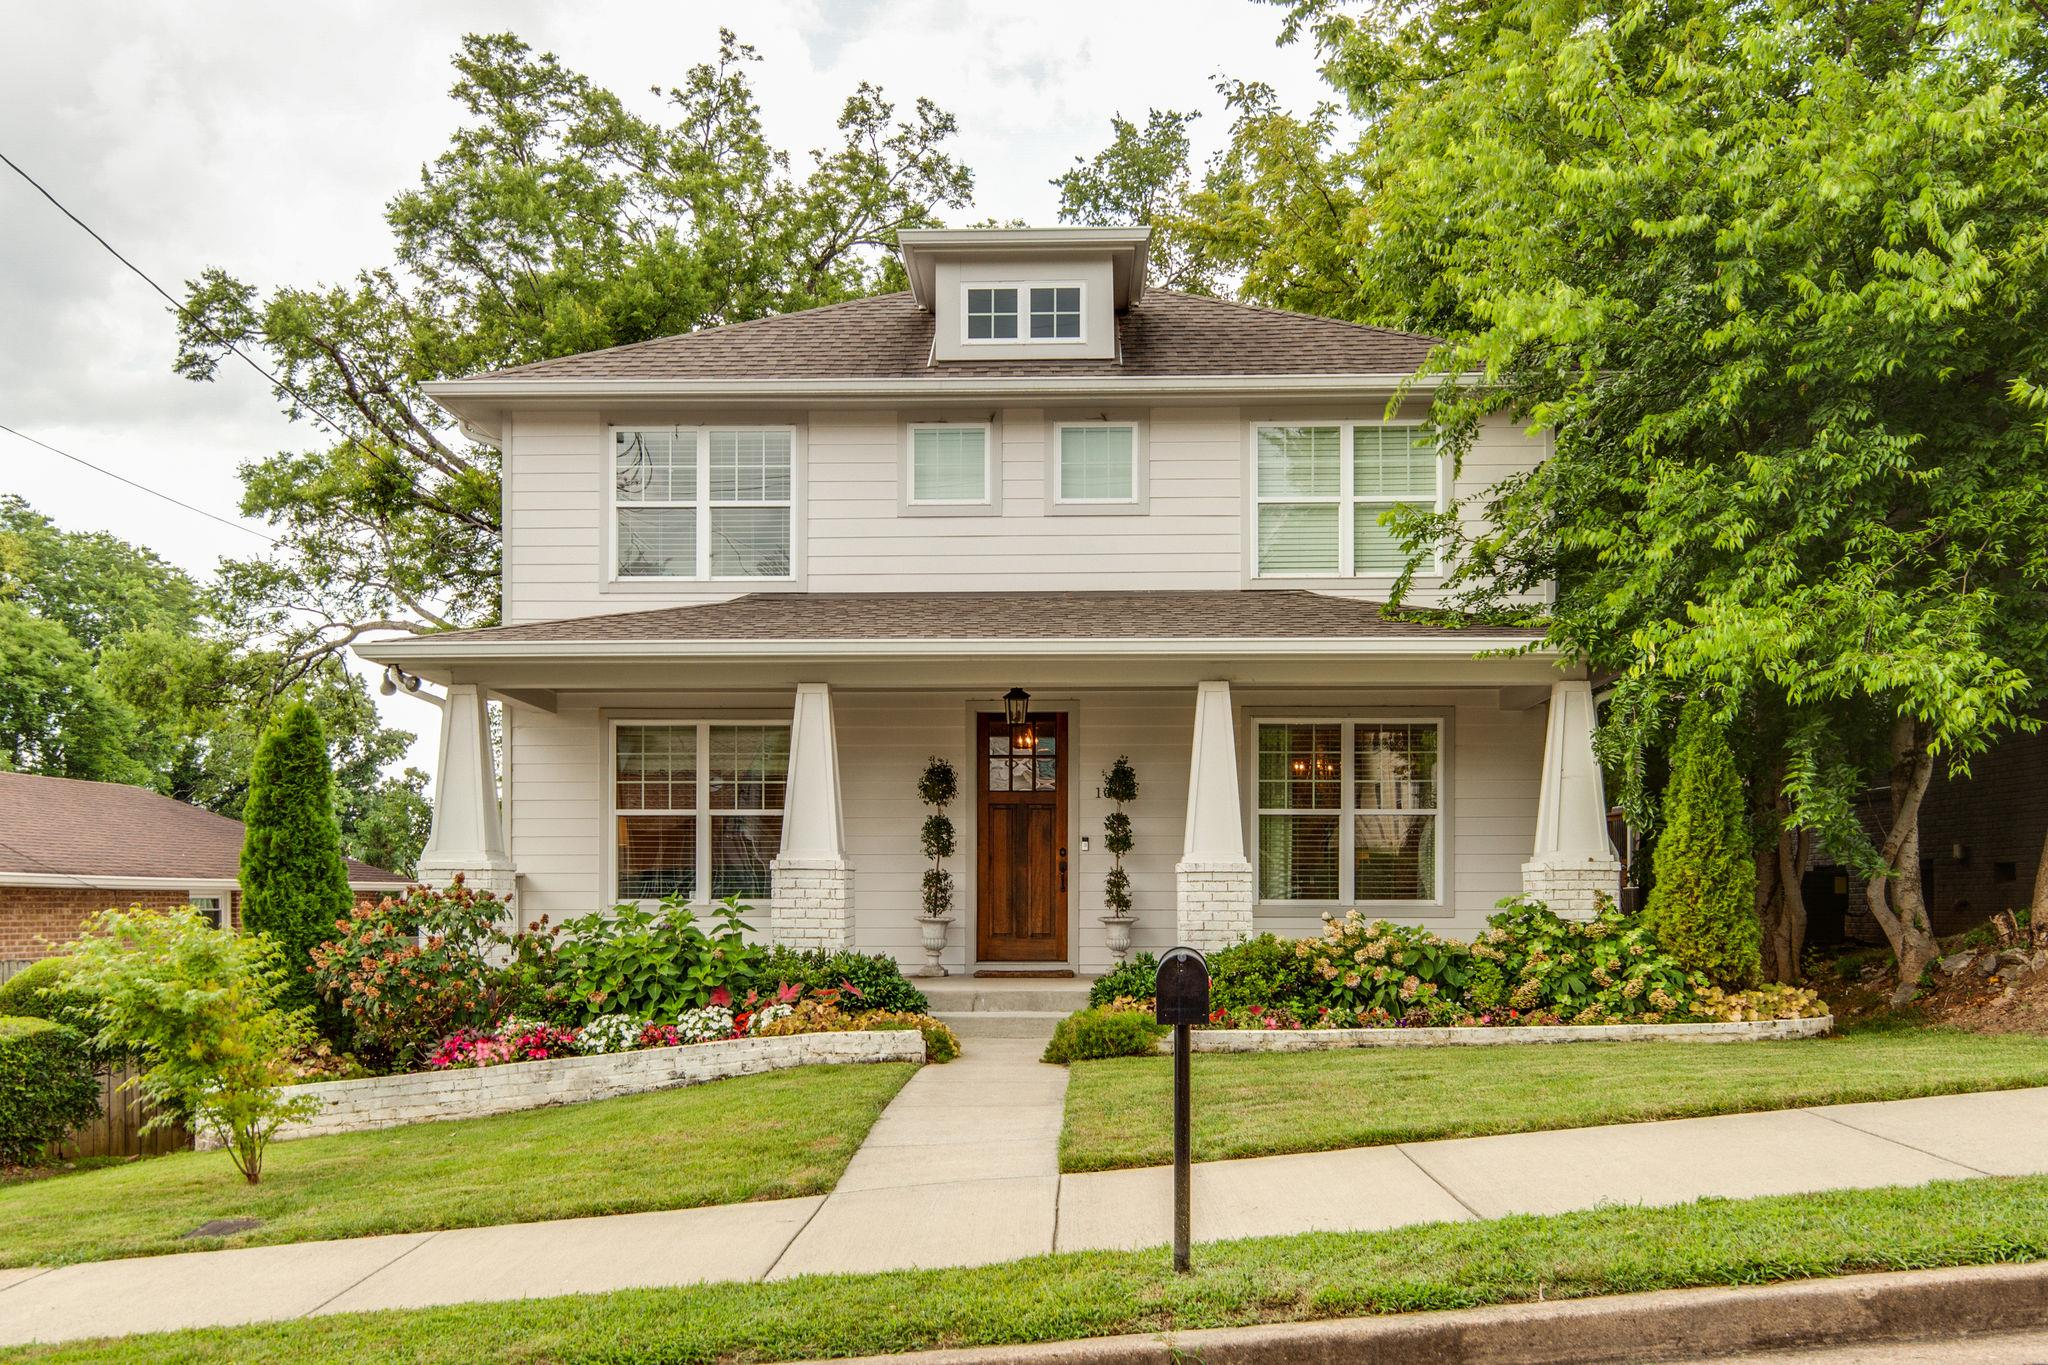 1009 Bate Ave, Nashville, TN 37204 - Nashville, TN real estate listing